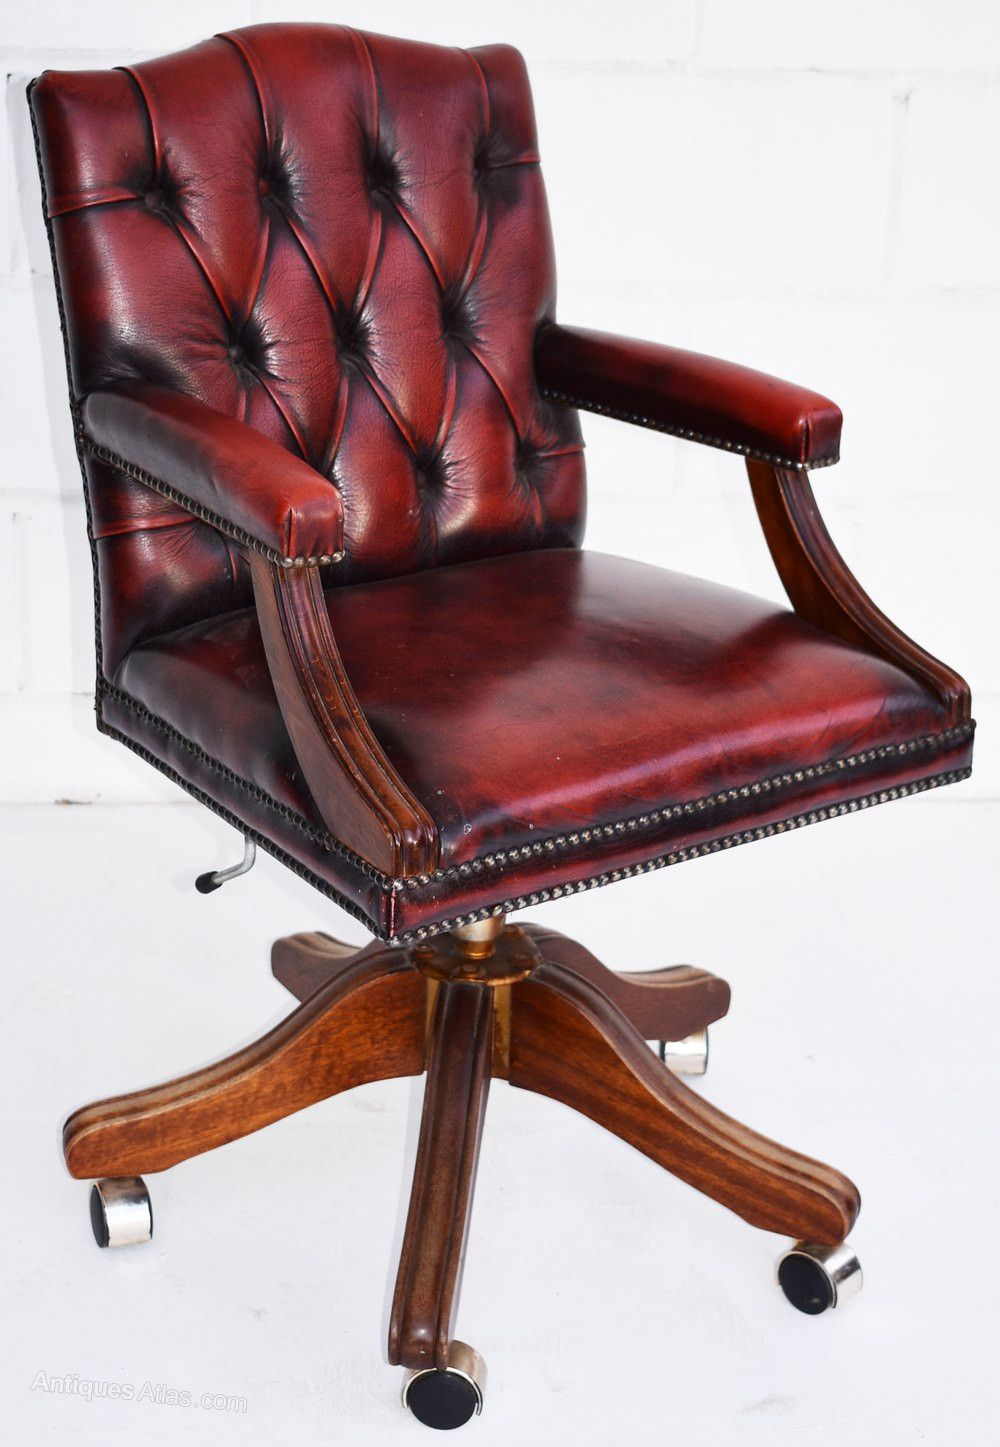 Red Leather Office Chair 2020 In 2020 Vintage Desk Chair Vintage Office Chair Chair